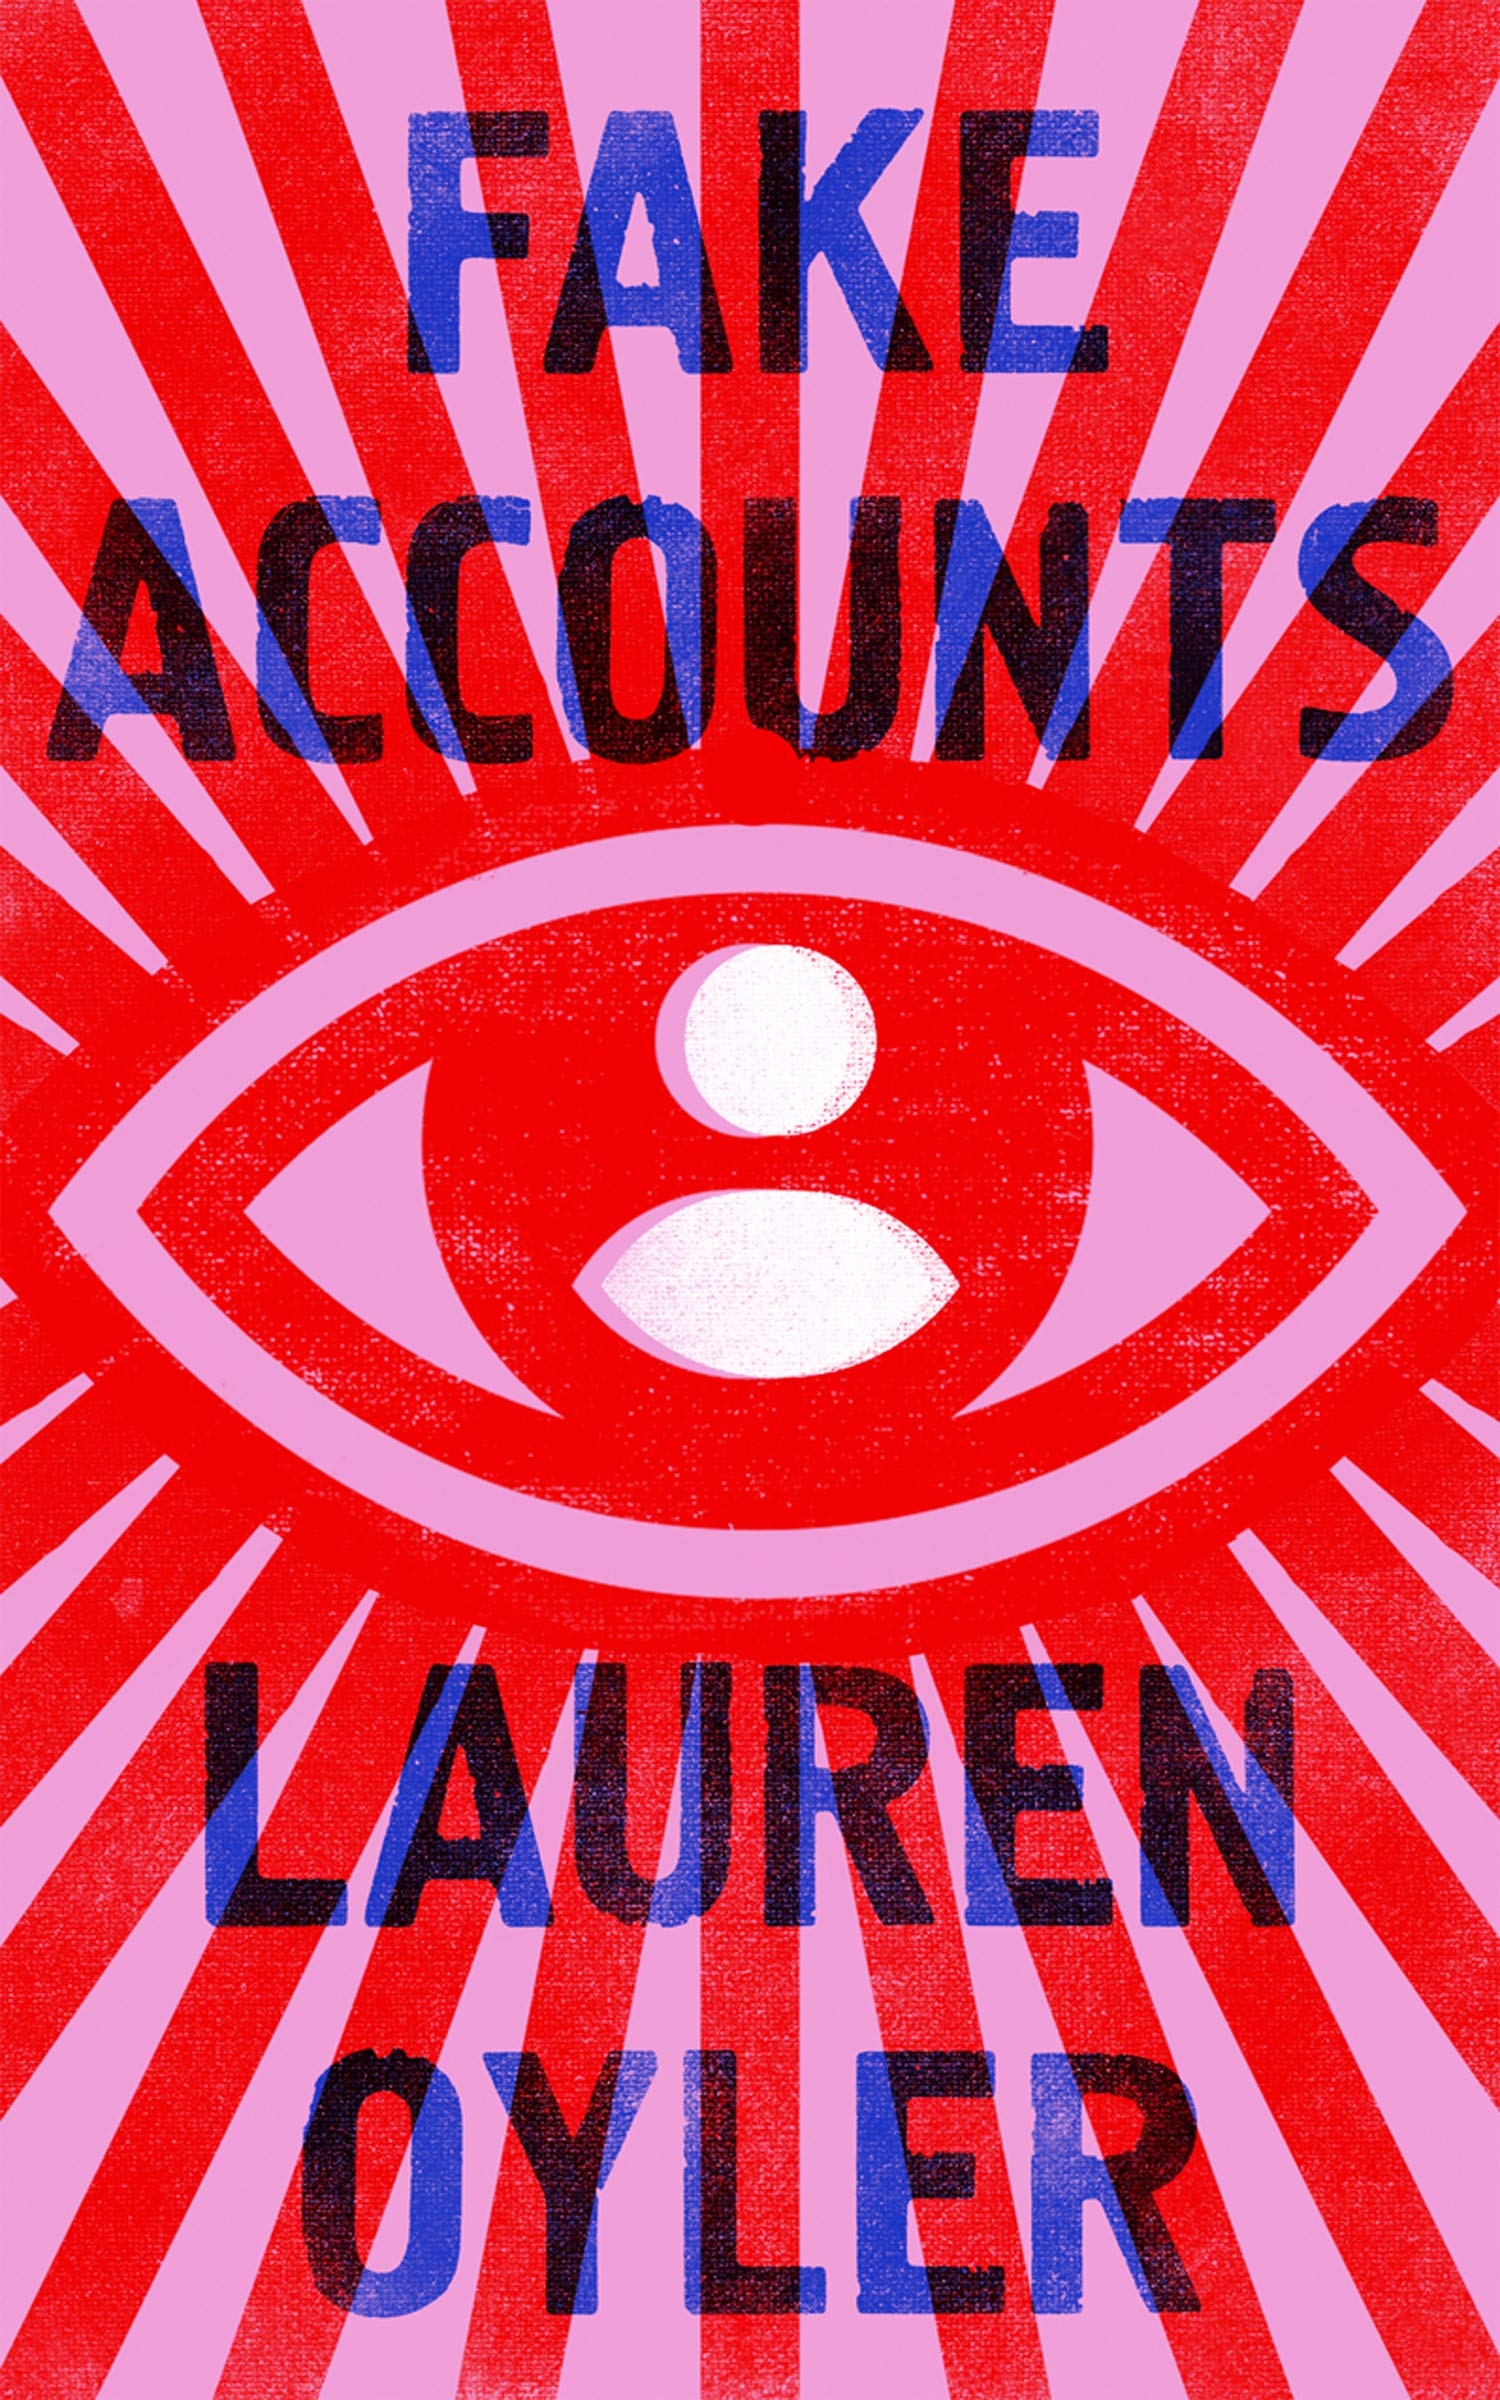 Fake Accounts: Amazon.co.uk: Oyler, Lauren: 9780008366520: Books